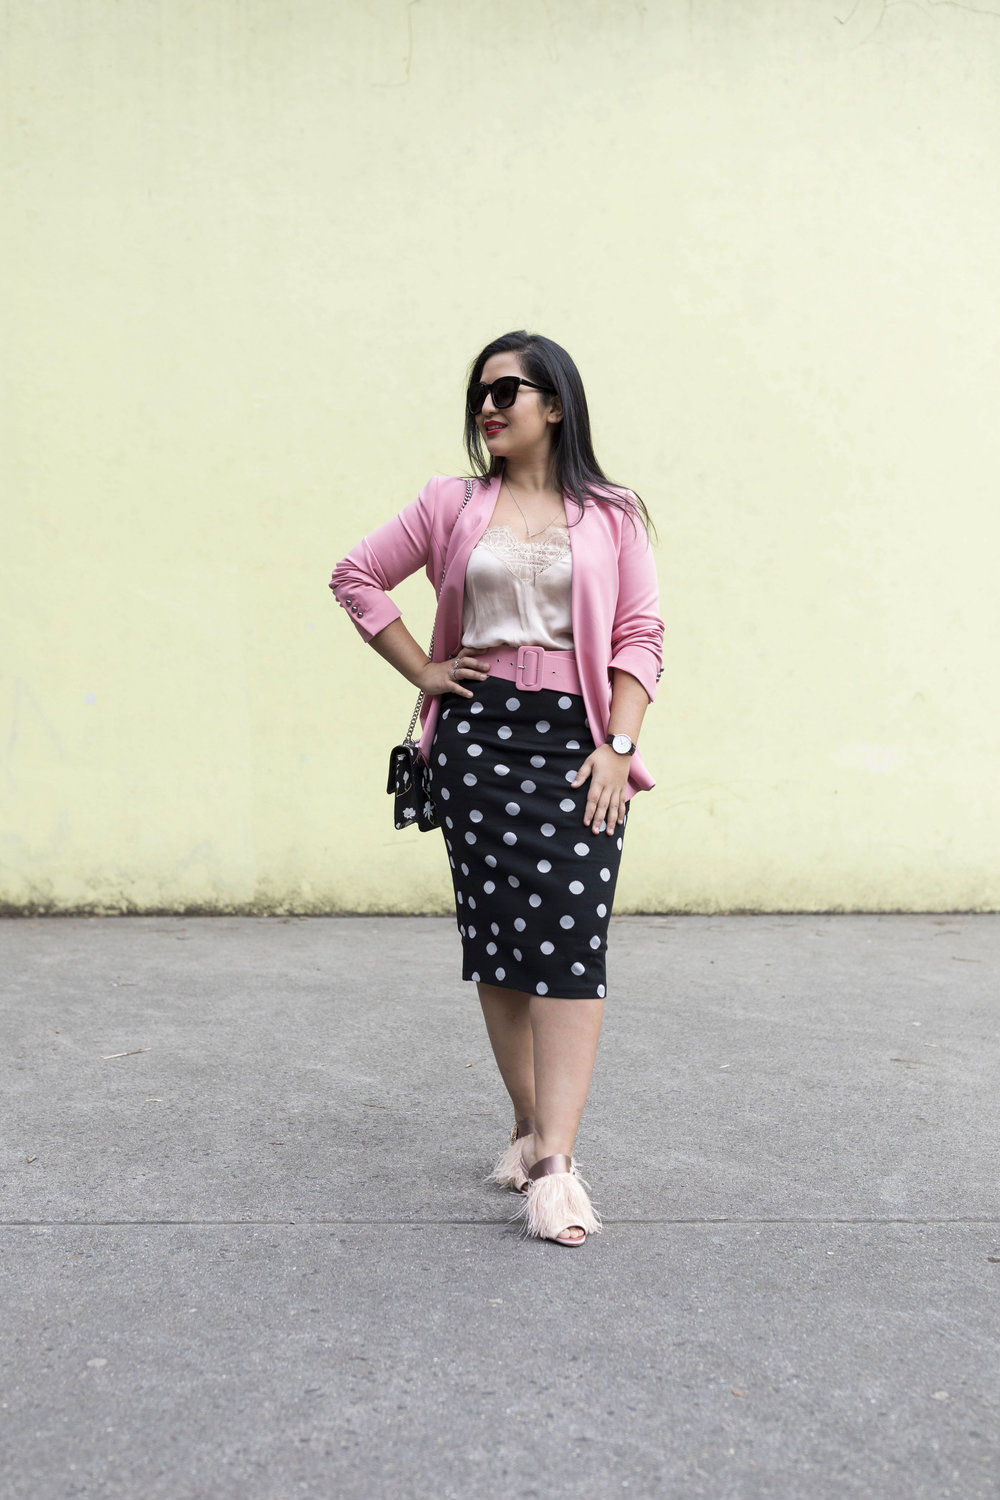 Krity S x Polka Dot and Pink Work Outfit3.jpg